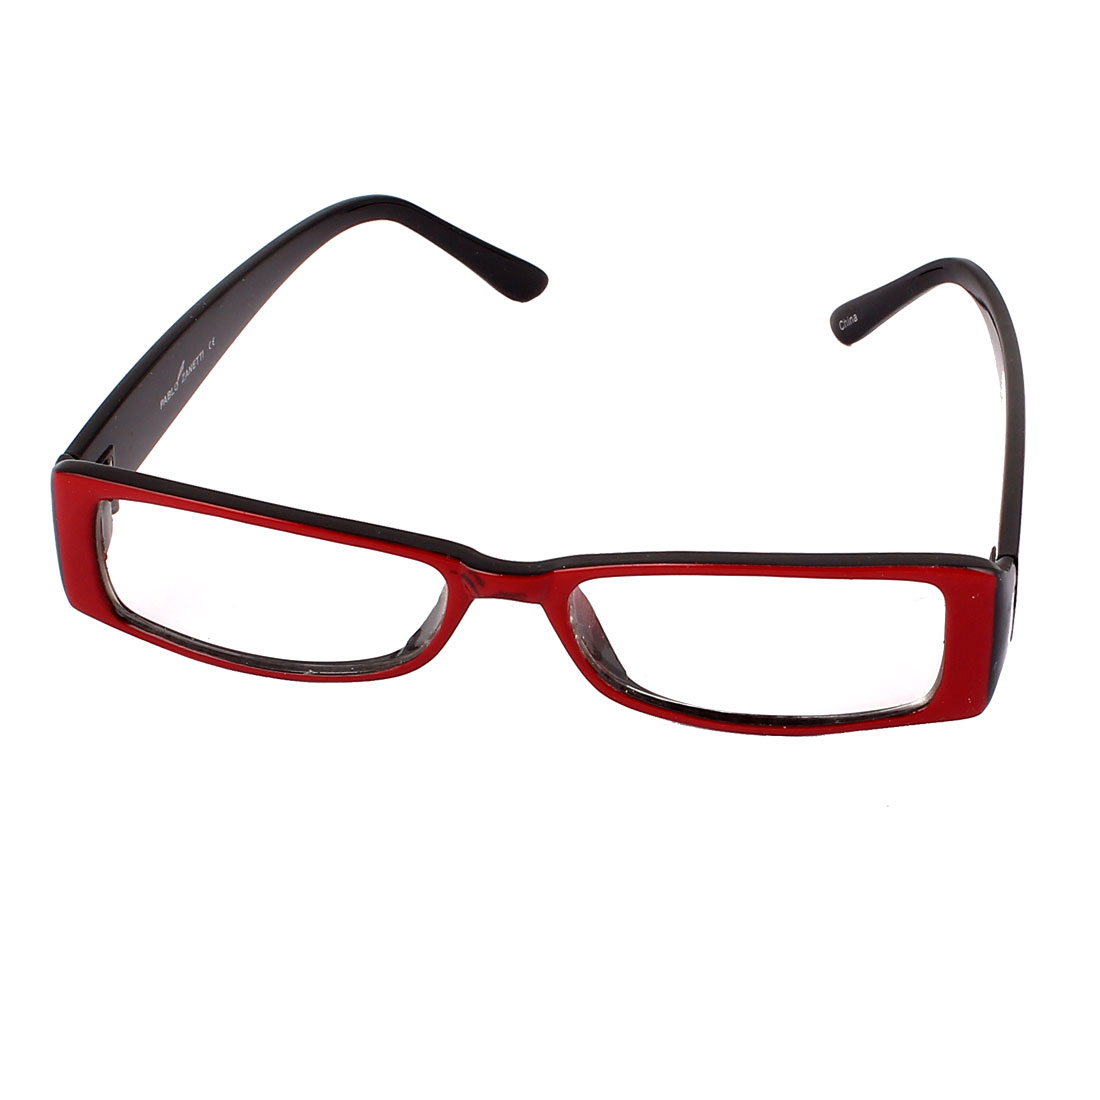 Rectangle Slim Frame Clear Lens Spectacles Eyewear Eyeglasses Red Black